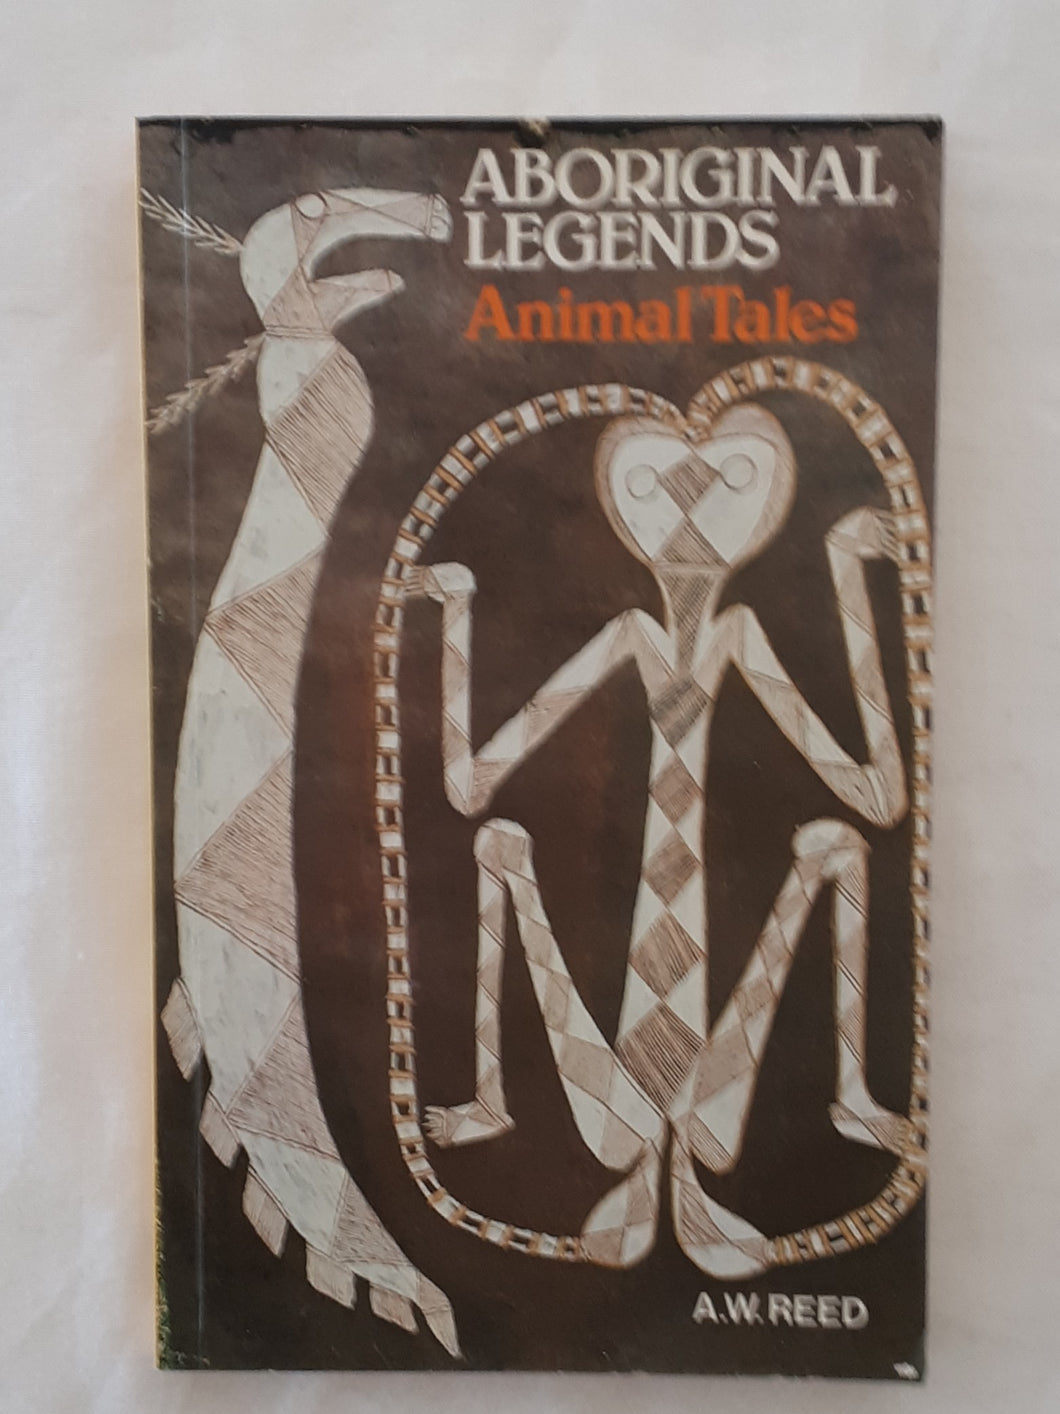 Aboriginal Legends Animal Tales by A. W. Reed